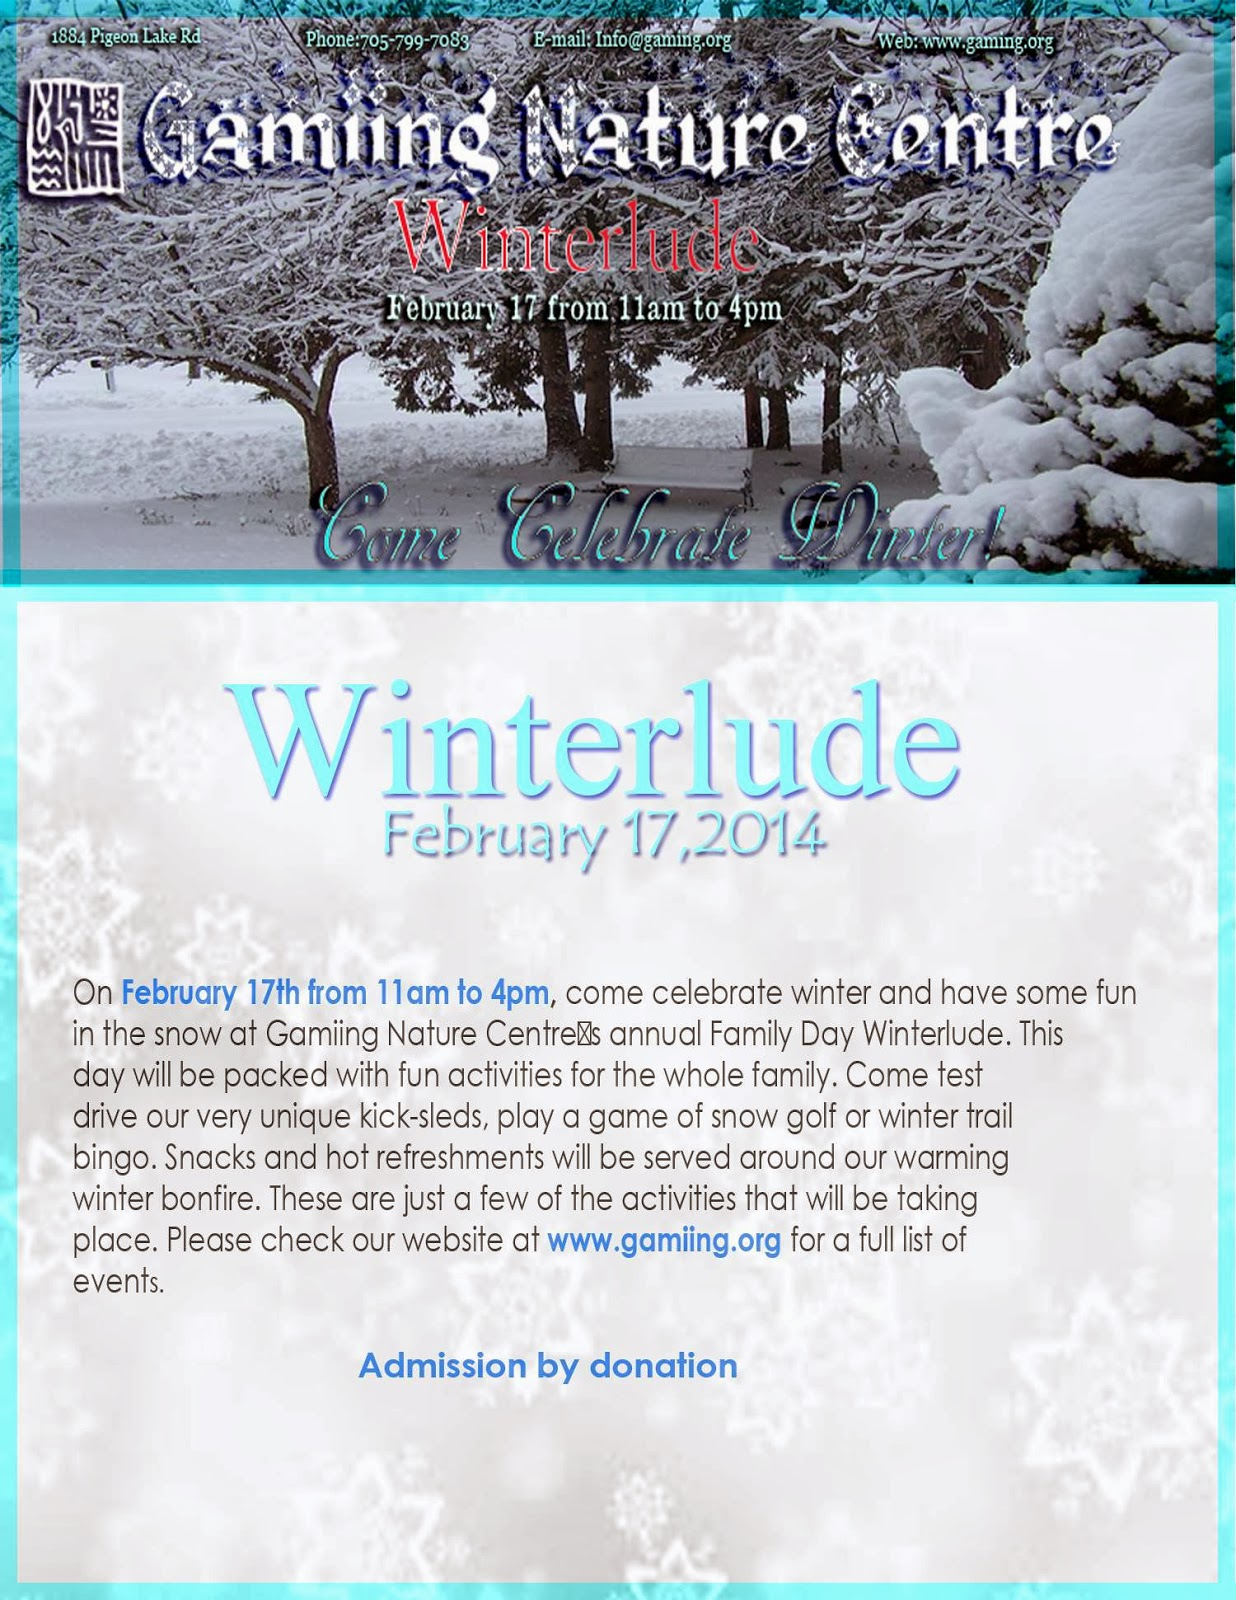 image Gamiing Nature Centre Winterlude poster listing events picture of snow covered trees